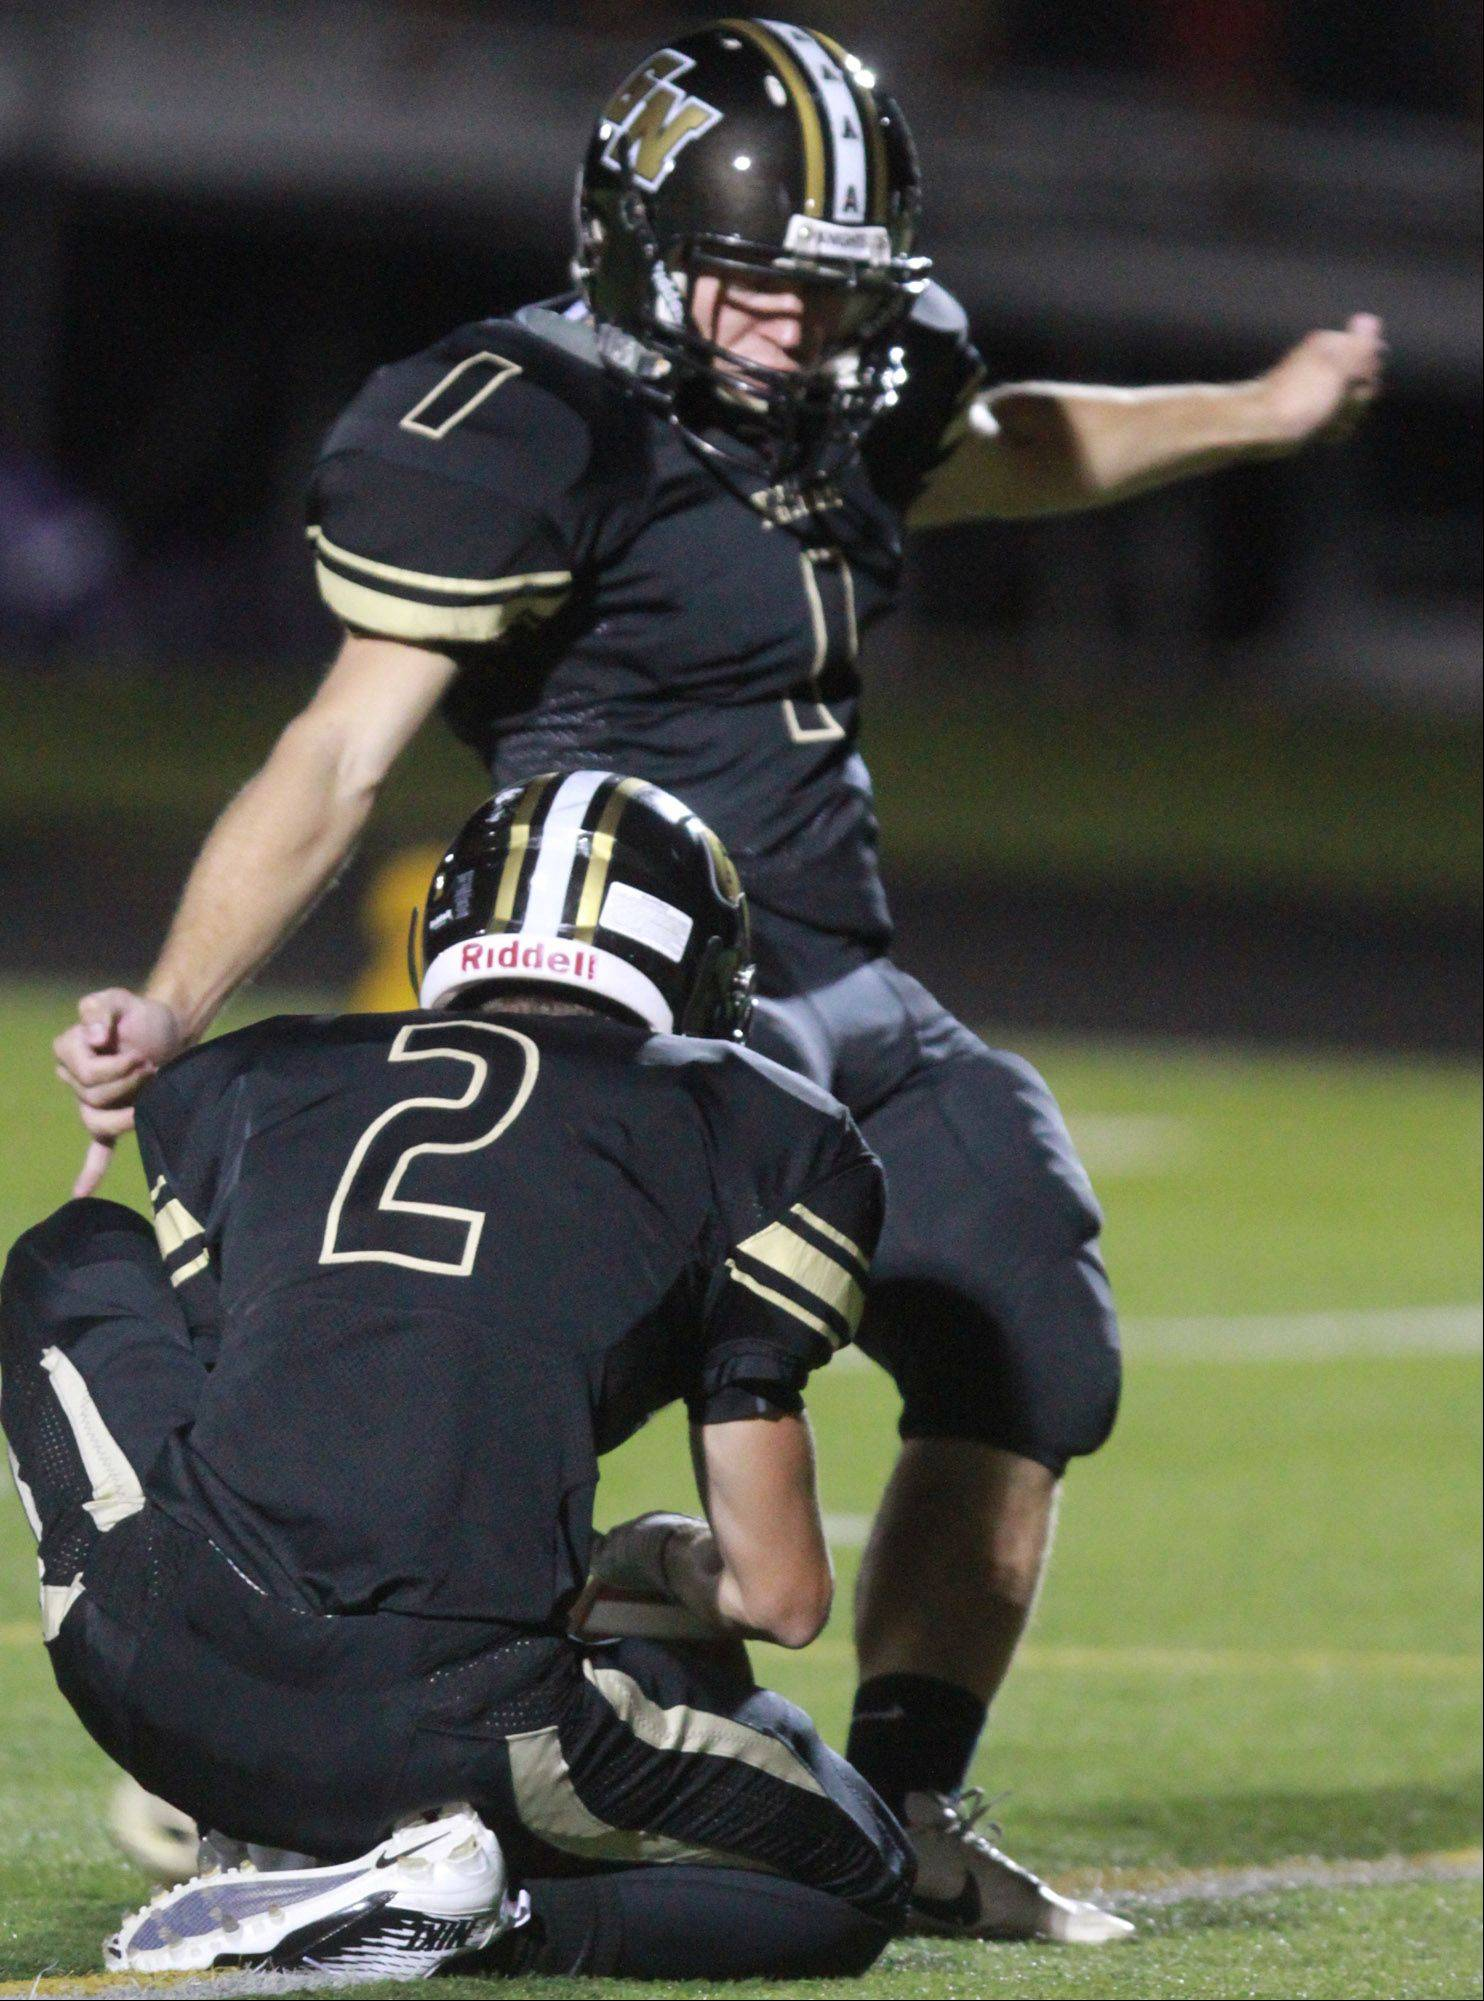 Week -5- Photos from the Hampshire at Grayslake North football game on Friday, Sept. 27.